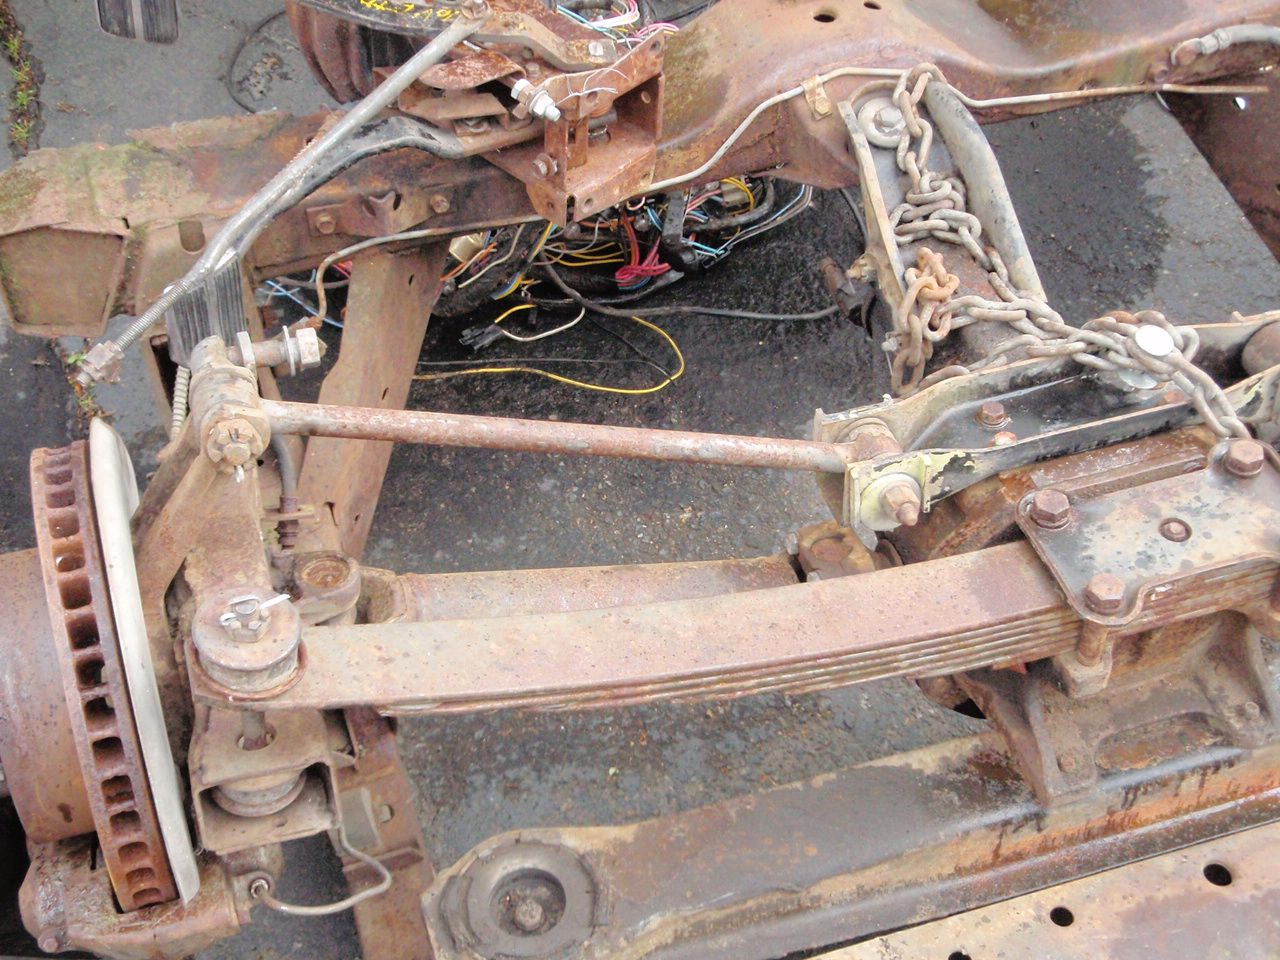 Spotting and Fixing Corvette Frame Damage